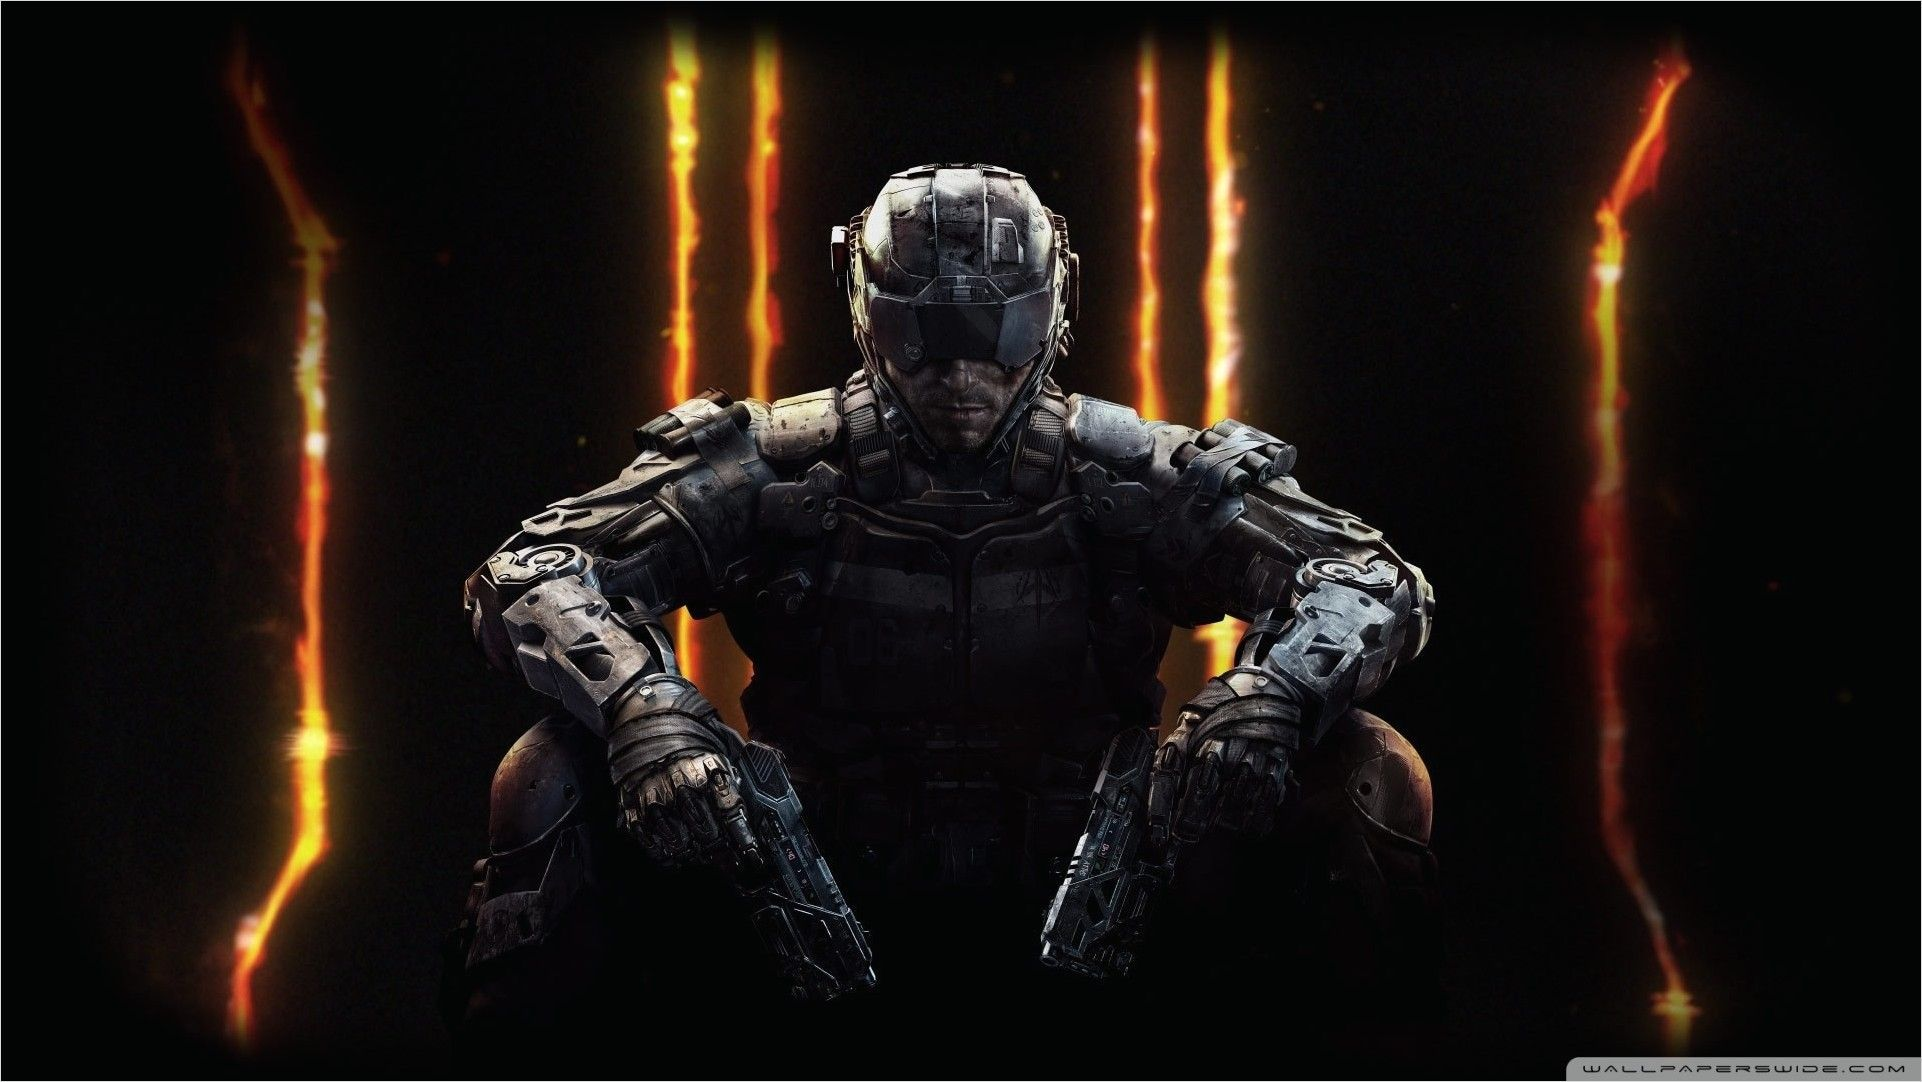 4k Amoled Wallpaper Pc In 2020 Call Of Duty Black Ops 3 Black Ops Call Of Duty Black